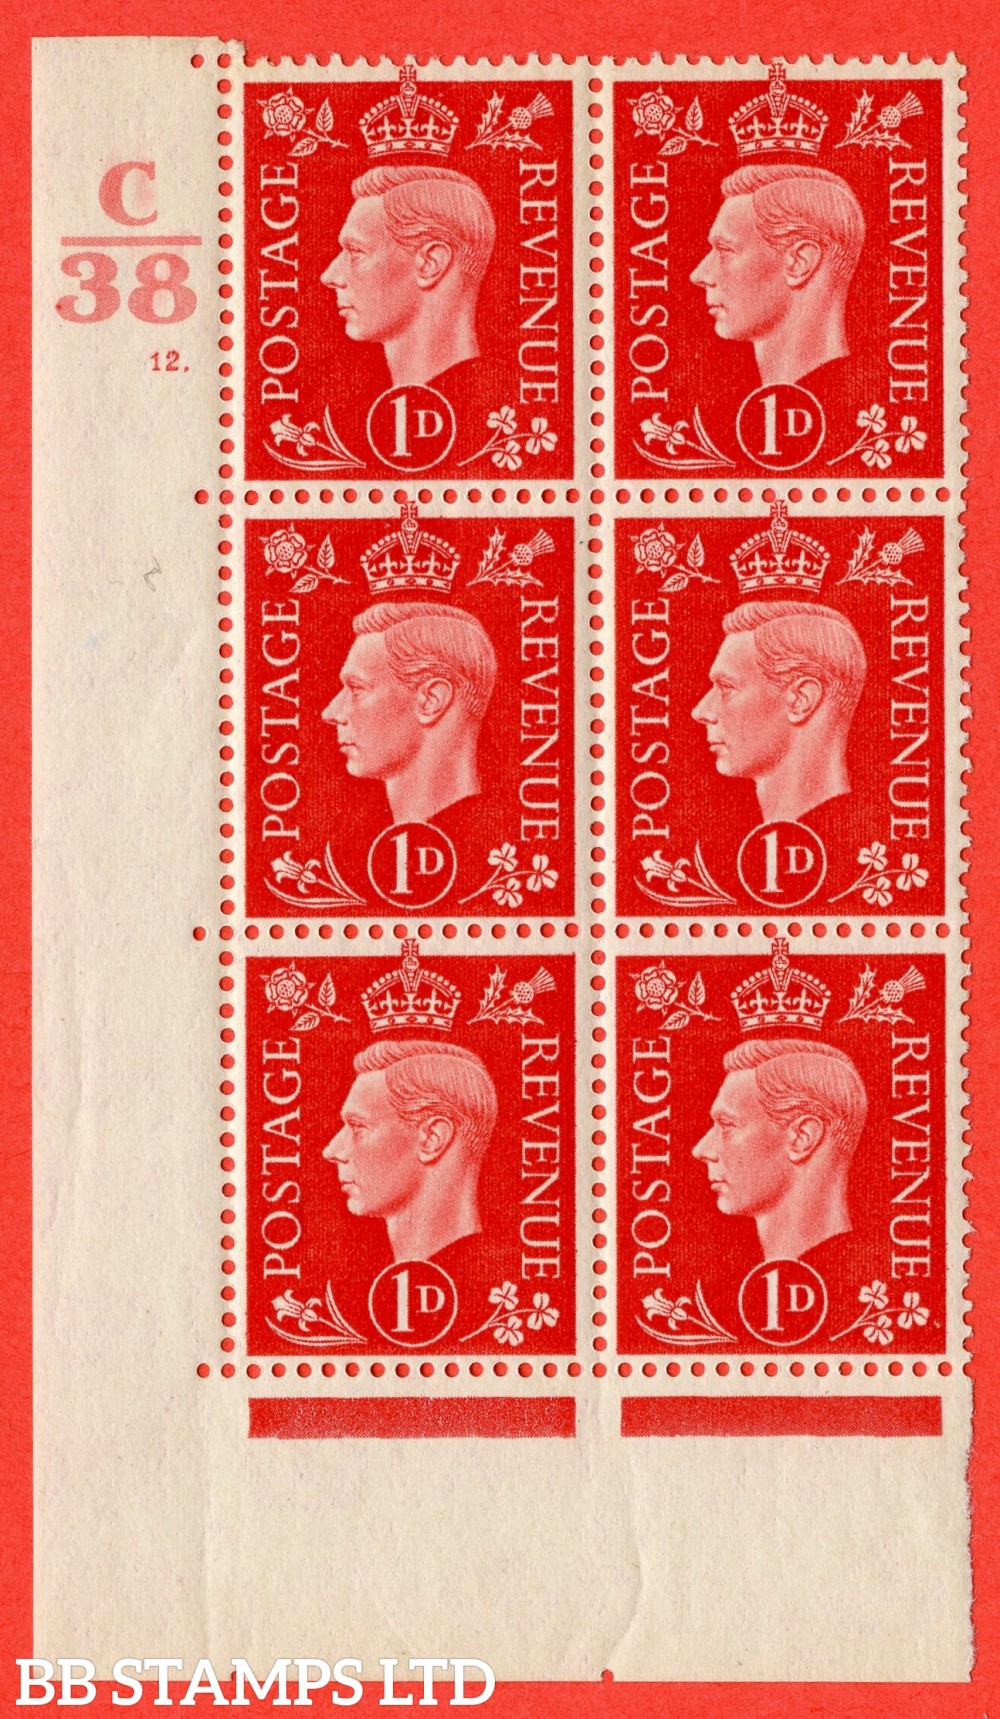 "SG. 463. Q4. 1d Scarlet. A fine lightly mounted mint "" Control C38 cylinder 12 dot "" block of 6 with perf type 5 E/I with marginal rule."